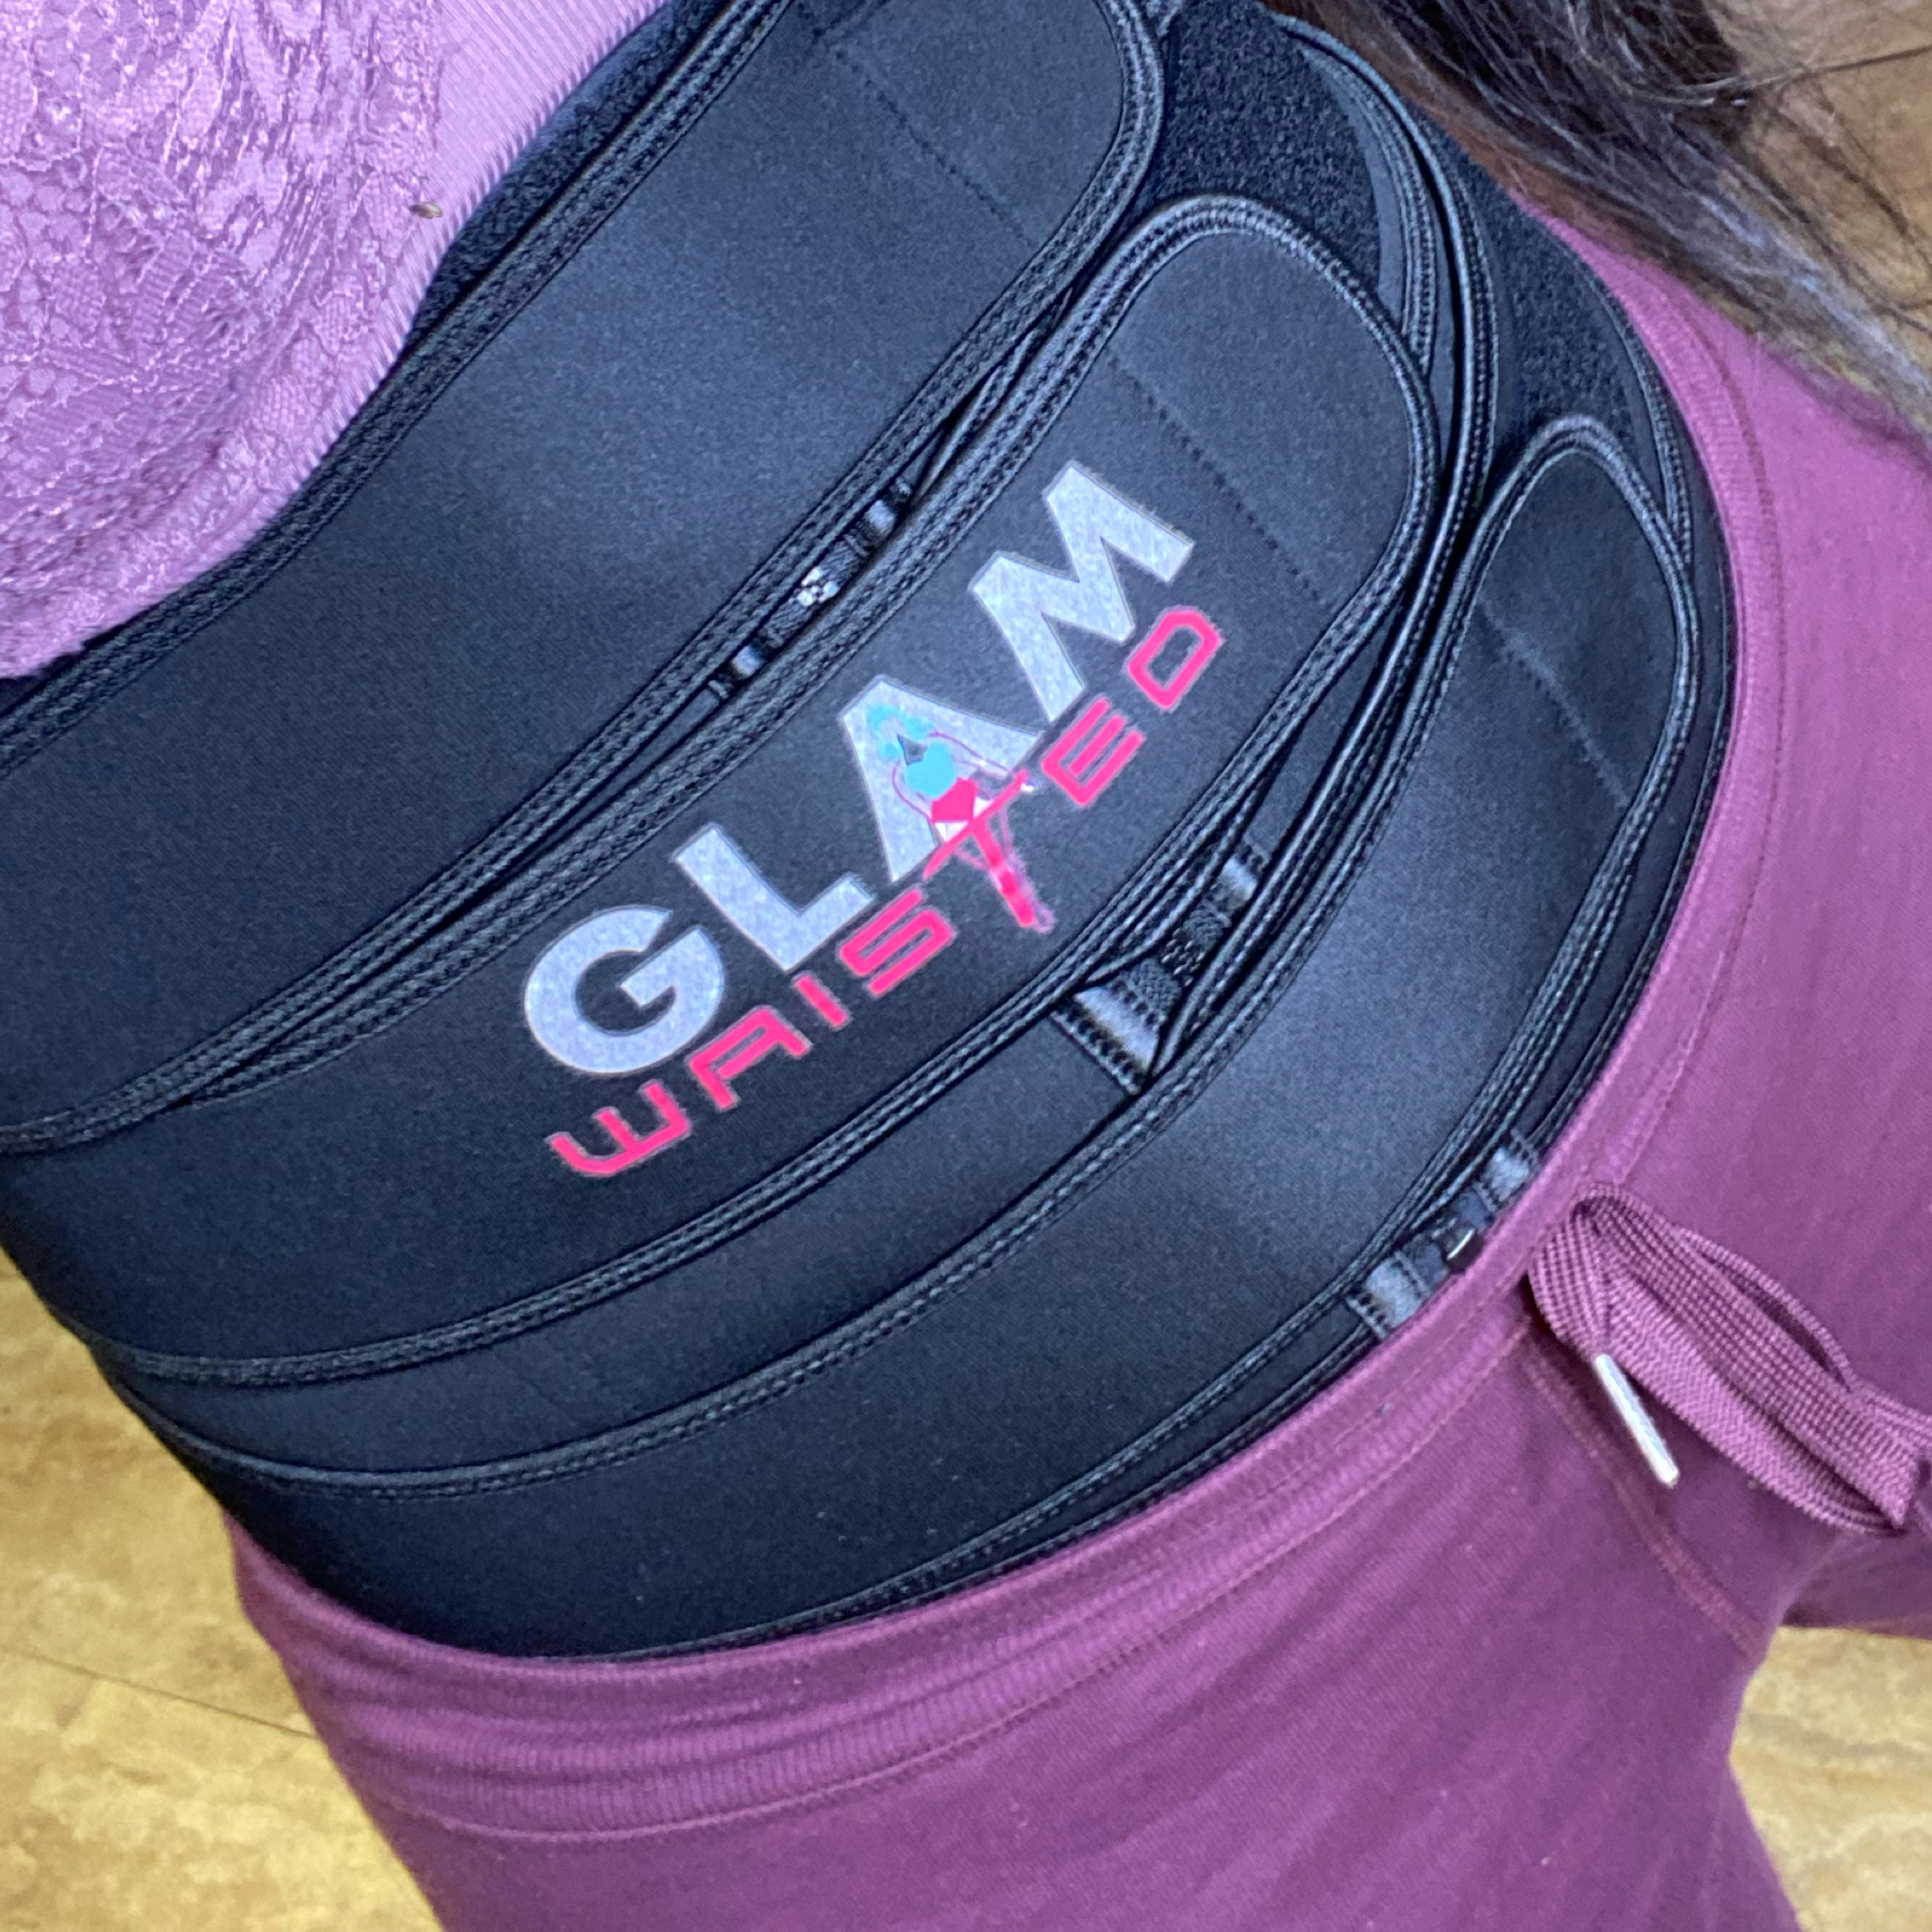 Glam Waisted 3 strap Waist Trainer - Glambella Shop